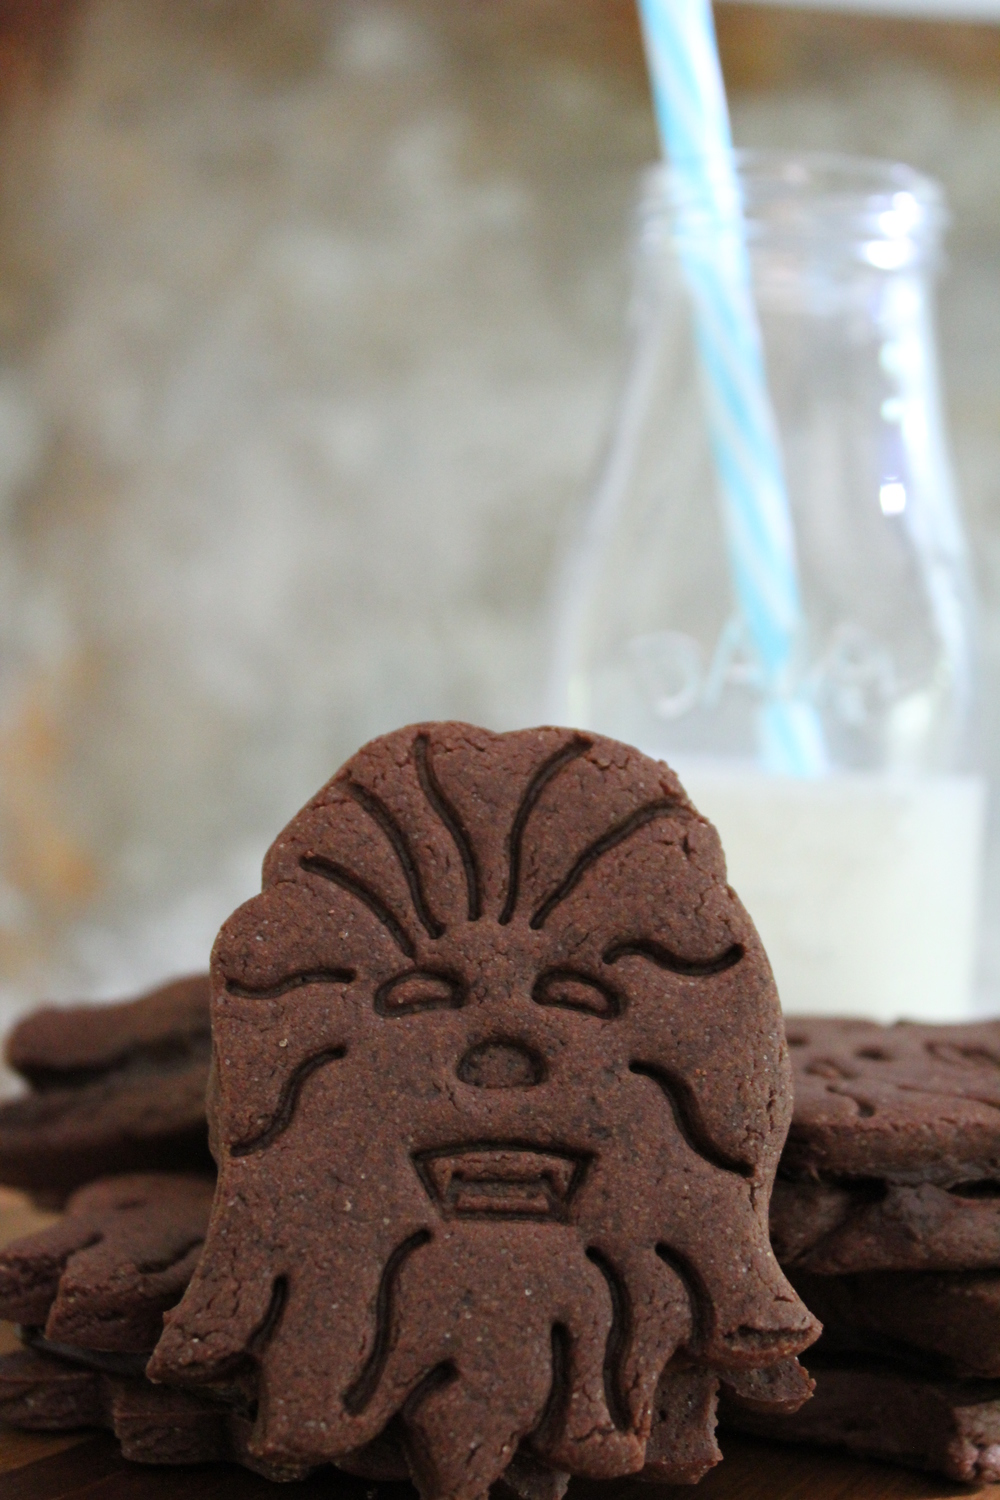 Wookie Cookie Sandwiches ($18/half dozen)